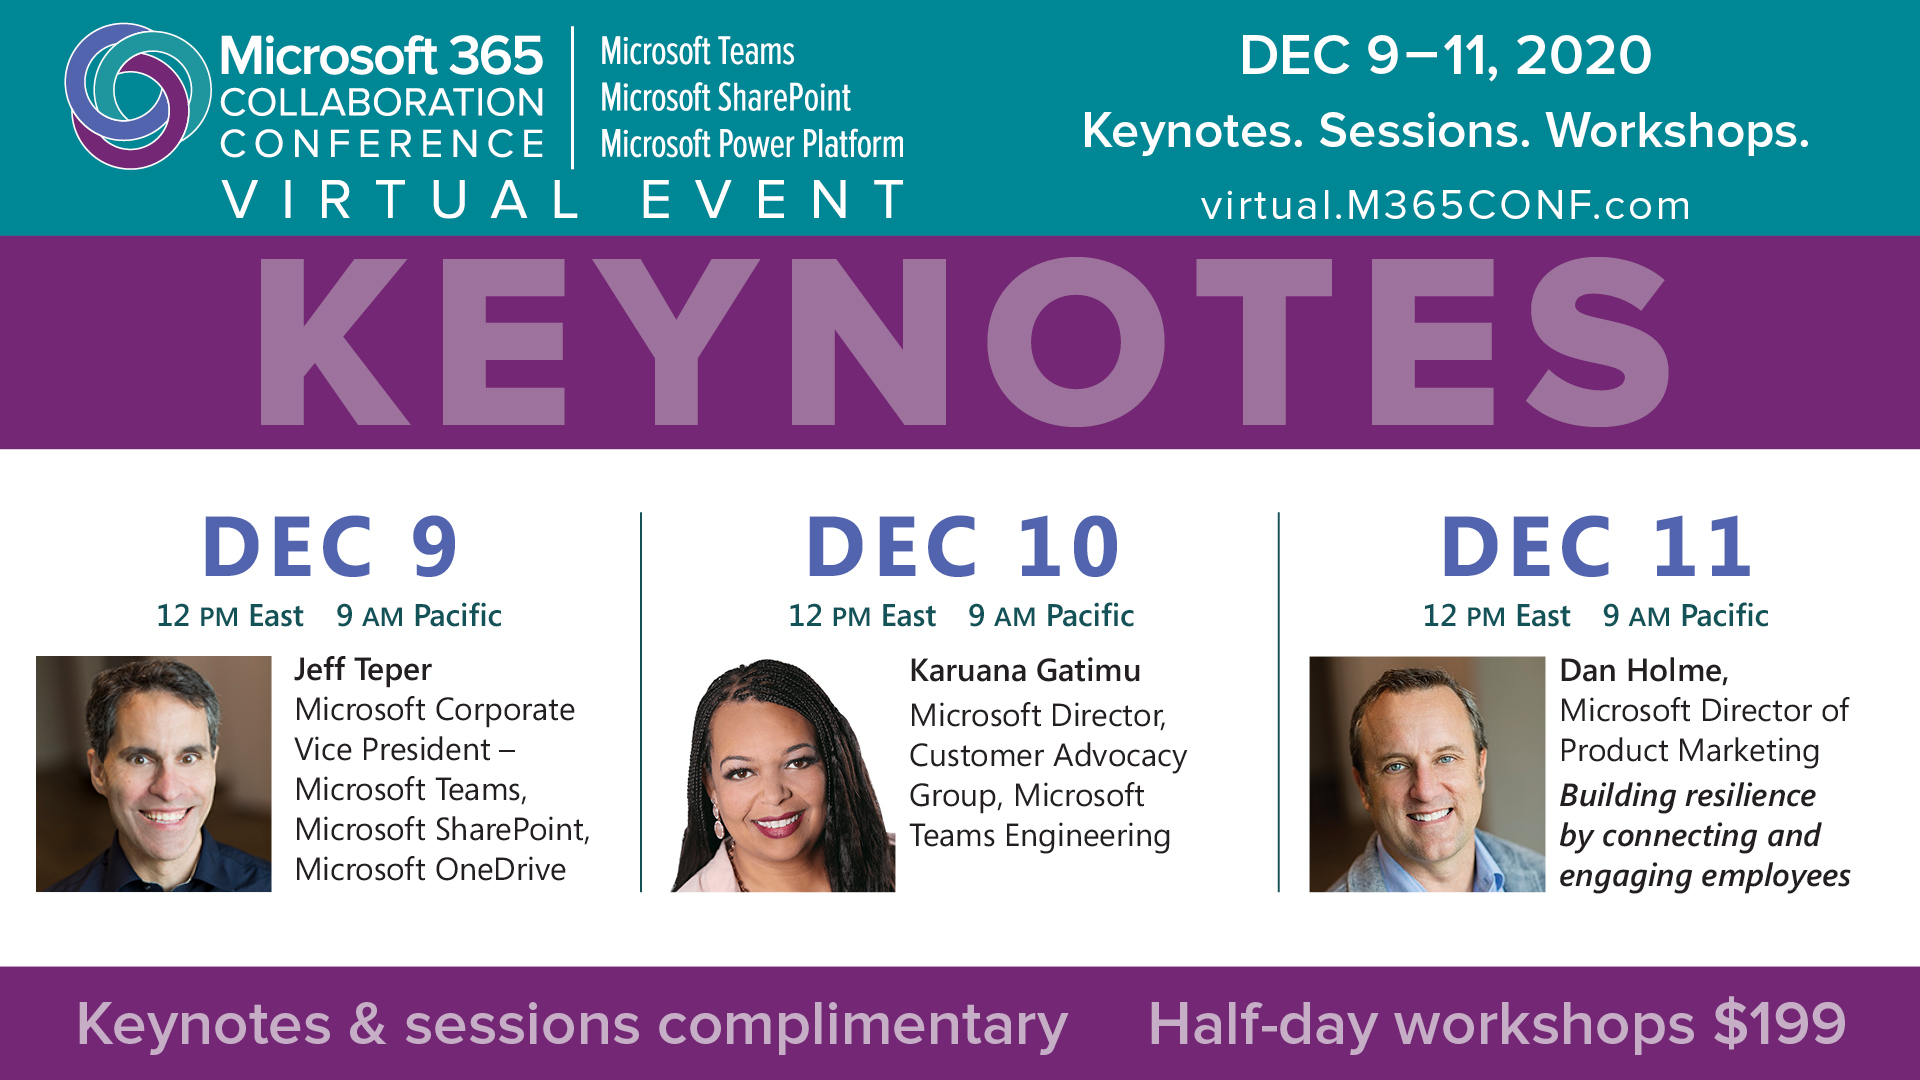 Microsoft 365 Collaboration Conference Virtual Event